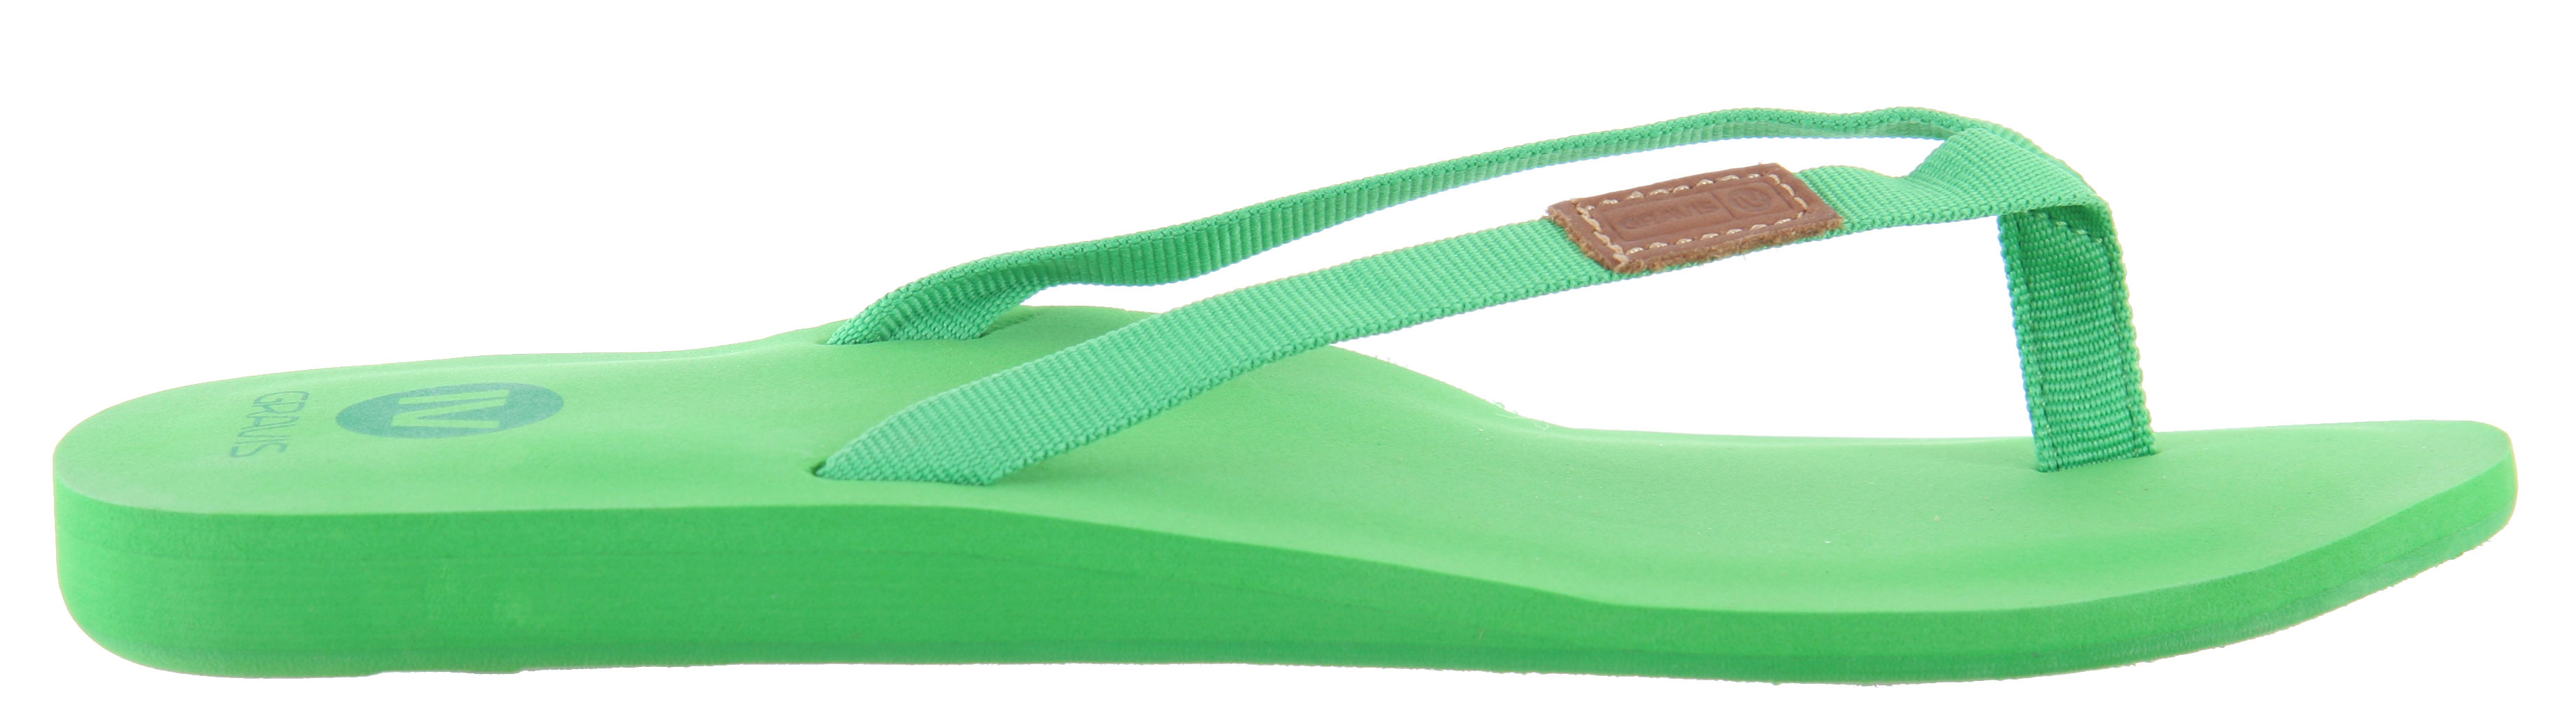 Surf The Gravis Spritzer Sandals offers such a fresh look, it's perfect for summer. Featuring a light T-strap design, its dainty appearance adds a nice feminine touch. The arch support provides great comfort, perfect to wear around town. Hit the beach with the Gravis Spritzer Sandals this summer and enjoy the sun. You'll look like you're ready for summer.Key Features of the Gravis Spritzer Sandals: Thin Webbing Arch Support EVA Topdeck - $11.85